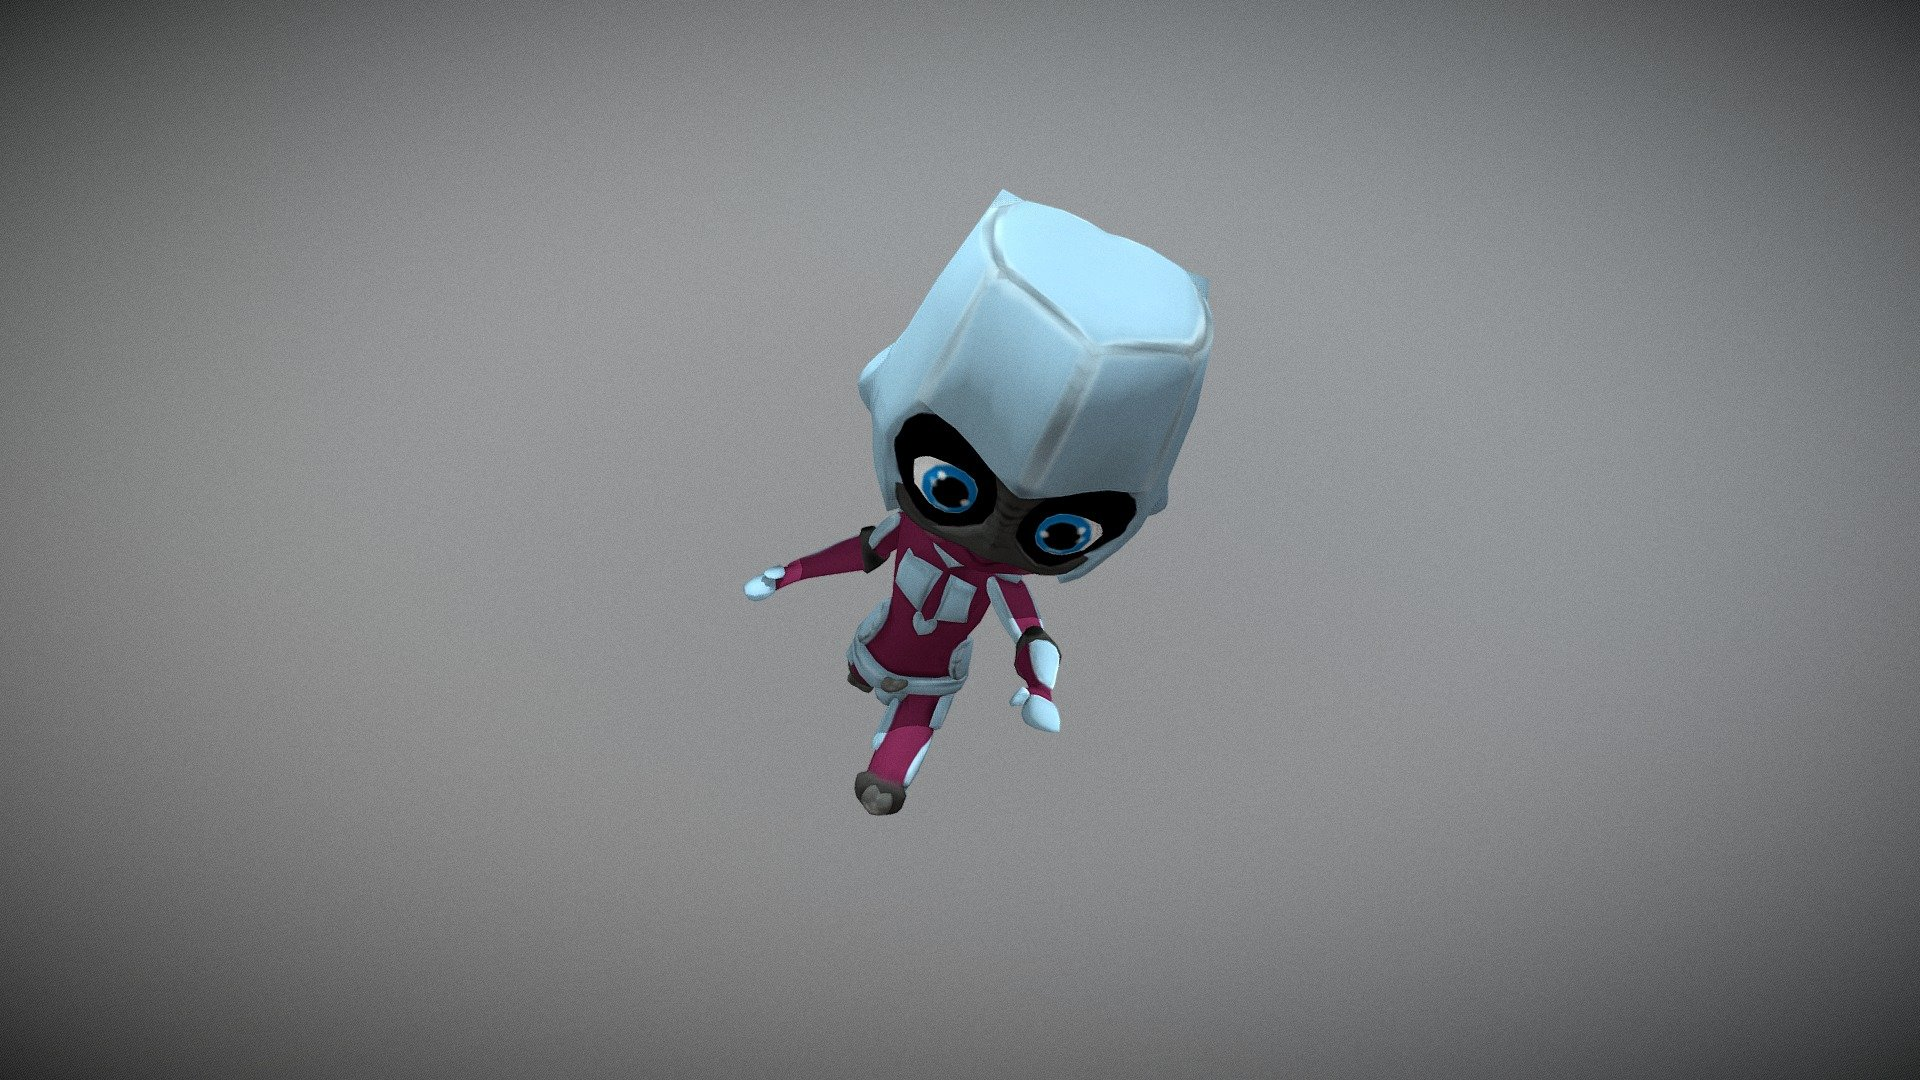 Chibi Crazy Diamond From Jojo Part 4 3d Model By Shane Turbotsunami B3106b1 Sketchfab Vol.09 ch.082 the stolen body vol.09 ch.083 chasing. chibi crazy diamond from jojo part 4